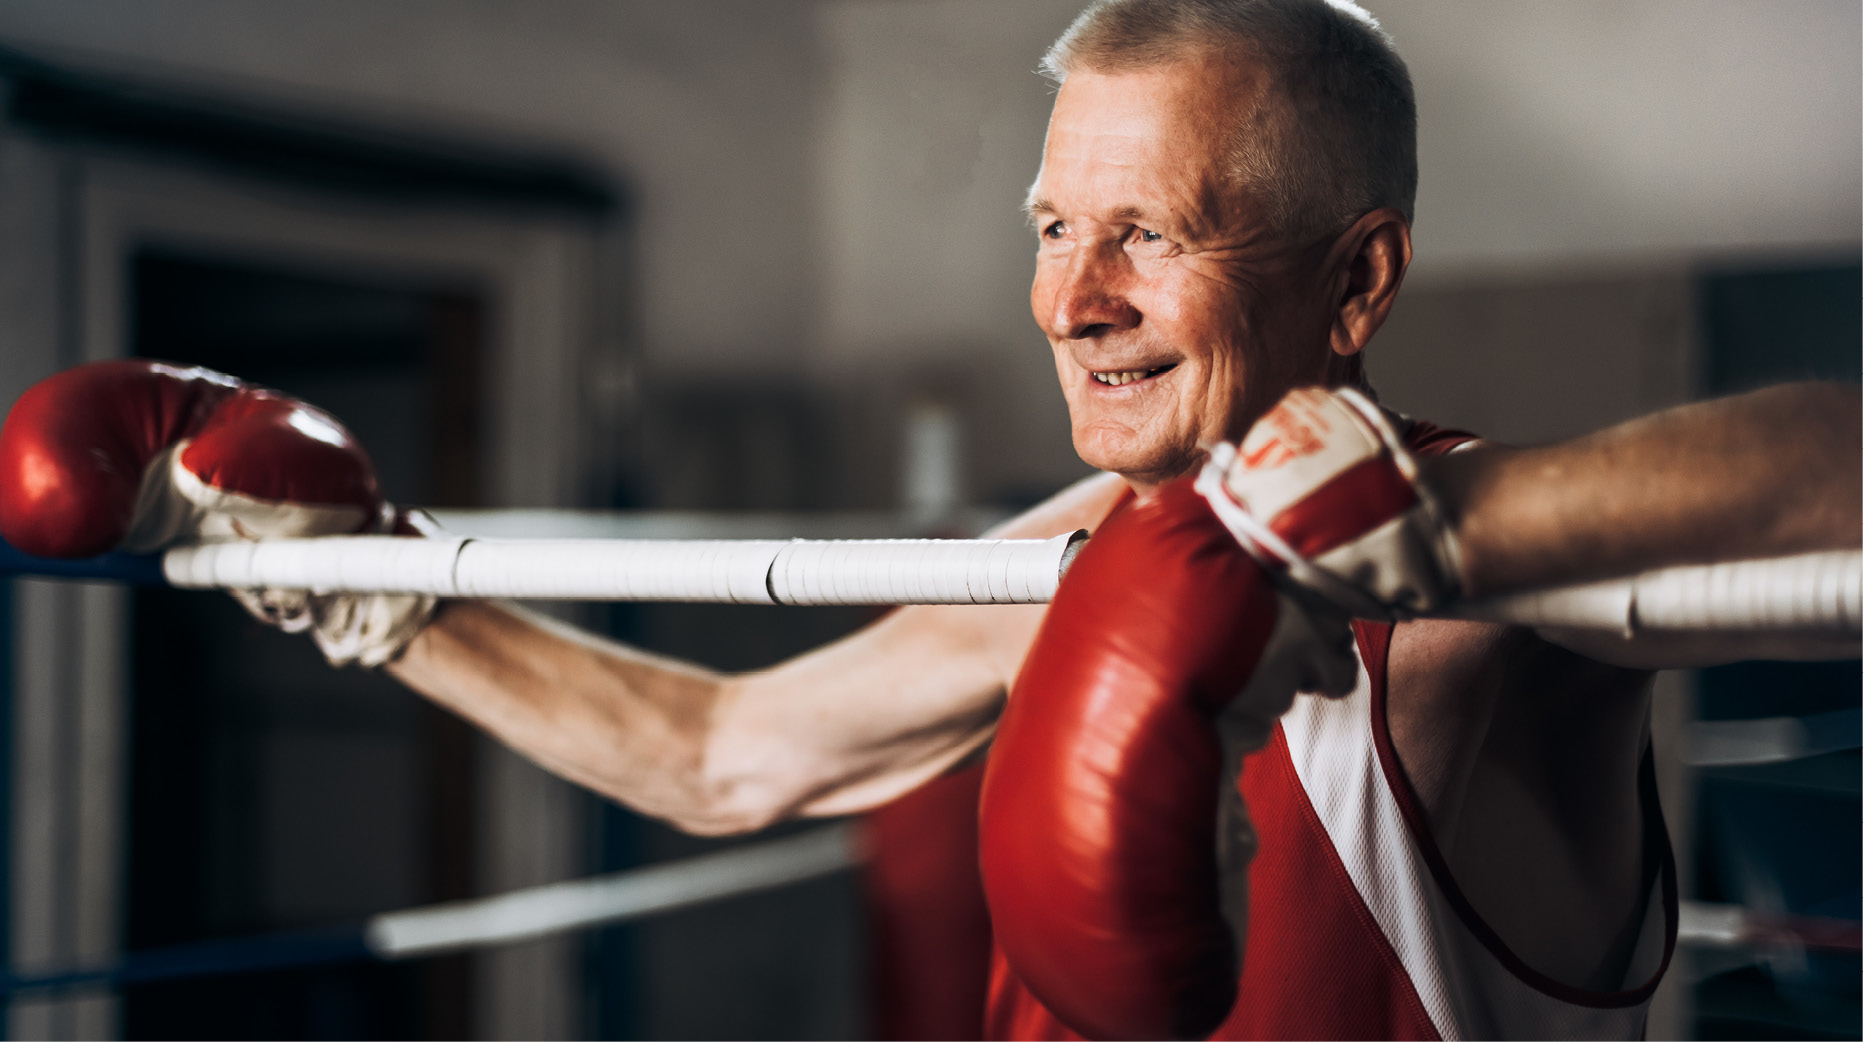 Looking For A Fountain Of Youth? Try Exercise5